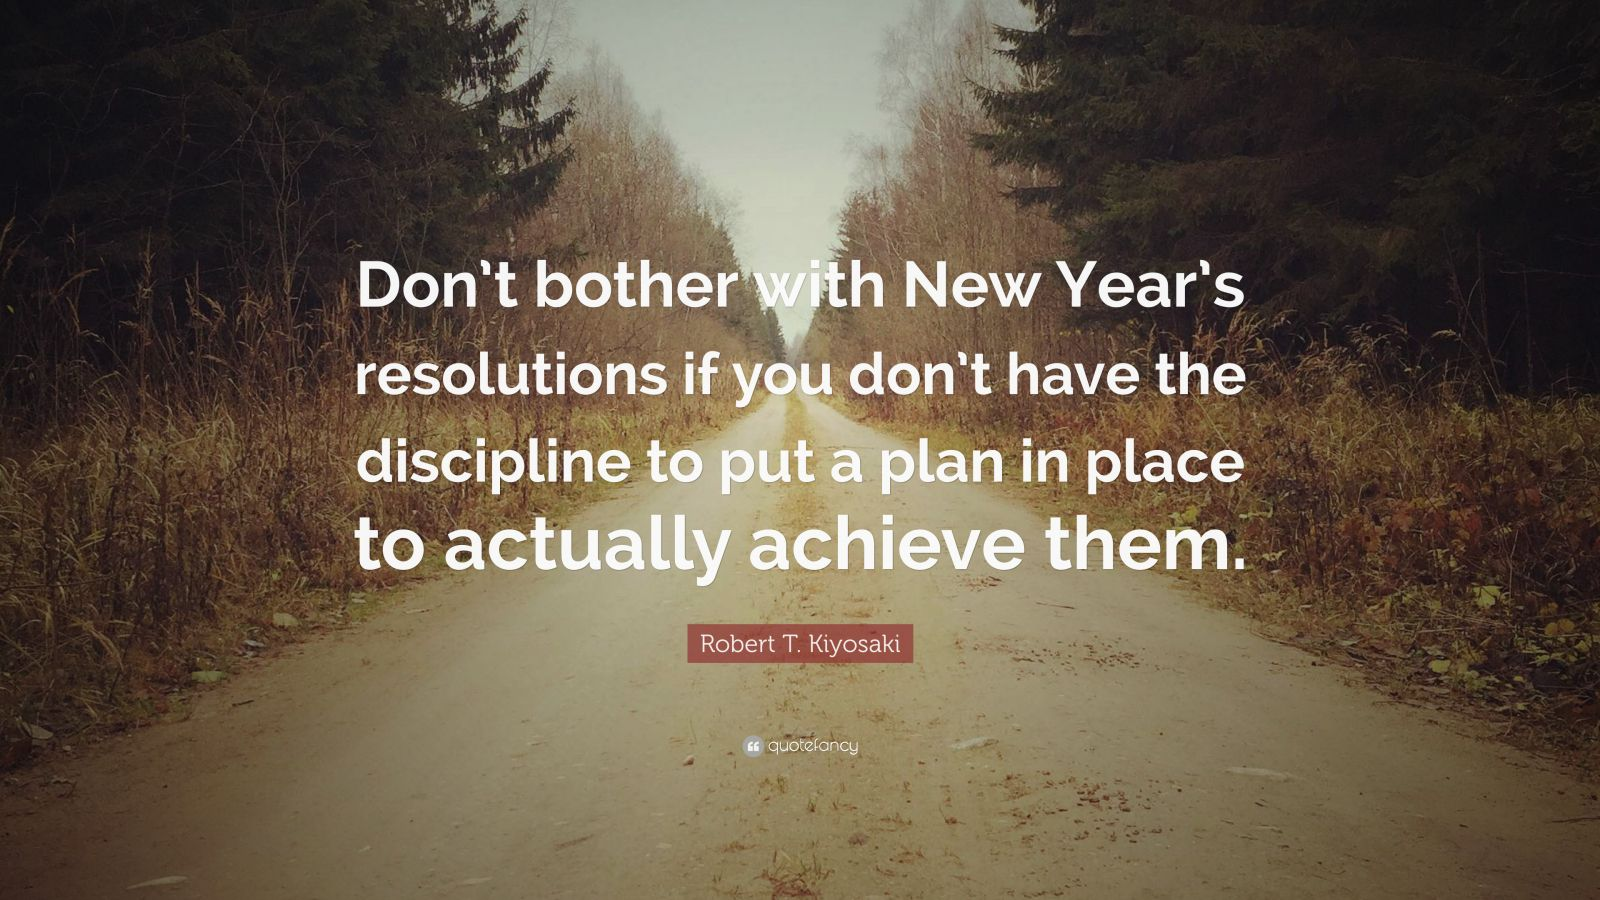 """Robert T. Kiyosaki Quote: """"Don't bother with New Year's resolutions if you don't have the discipline to put a plan in place to actually achieve them."""""""